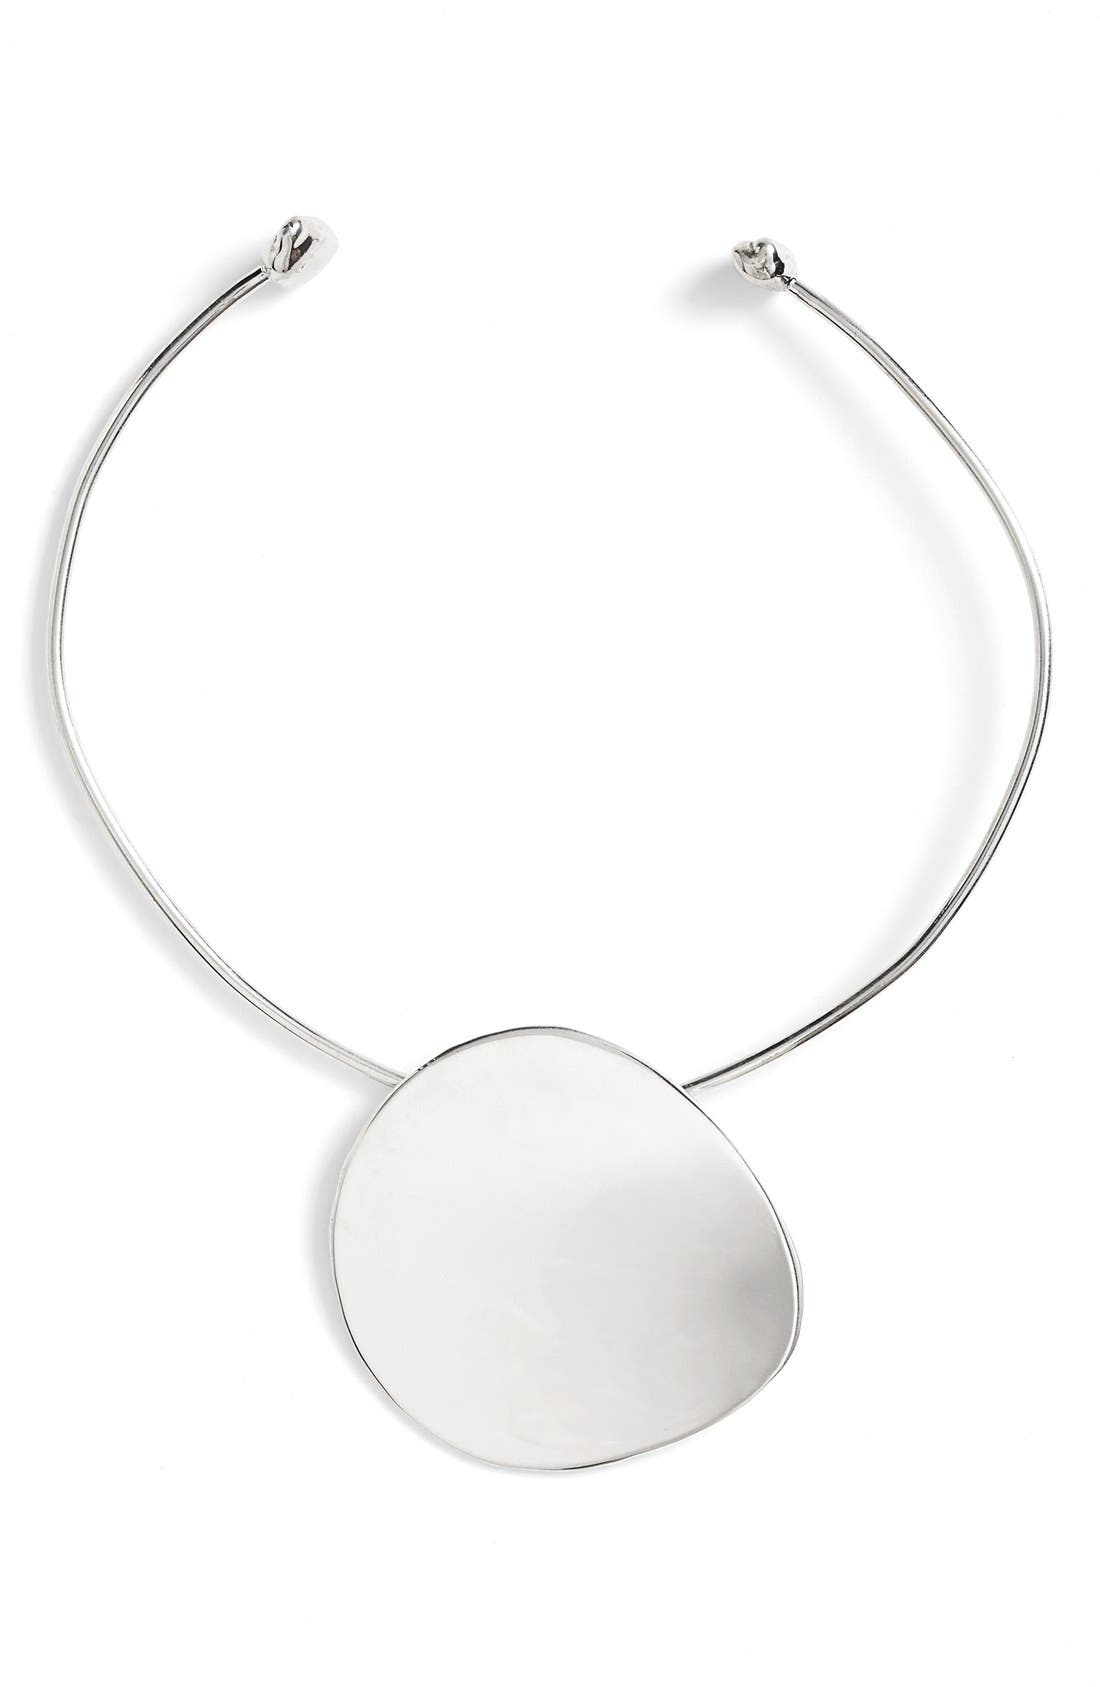 Pendo Collar Necklace,                         Main,                         color, SILVER